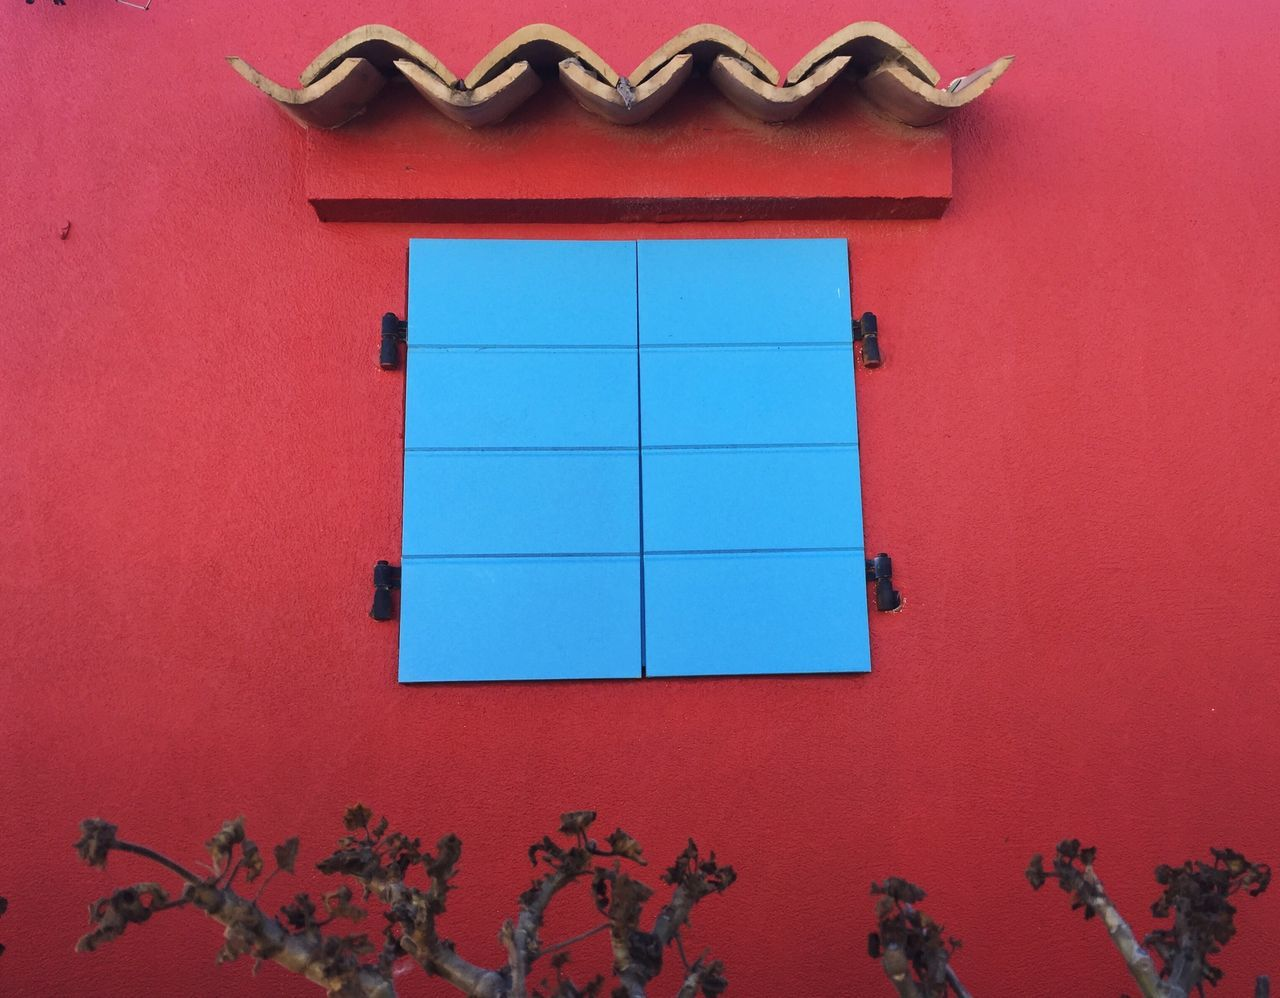 Colors And Patterns absolute red, by Claudia Ioan Window Built Structure Architecture Building Exterior Red Wall Plant Vibrant Color Geometric Shape Day Mobile Photography IPhoneography Iphone6 The Roll EyeEm Gallery TakeoverContrast VSCO Vscocam Low Angle View